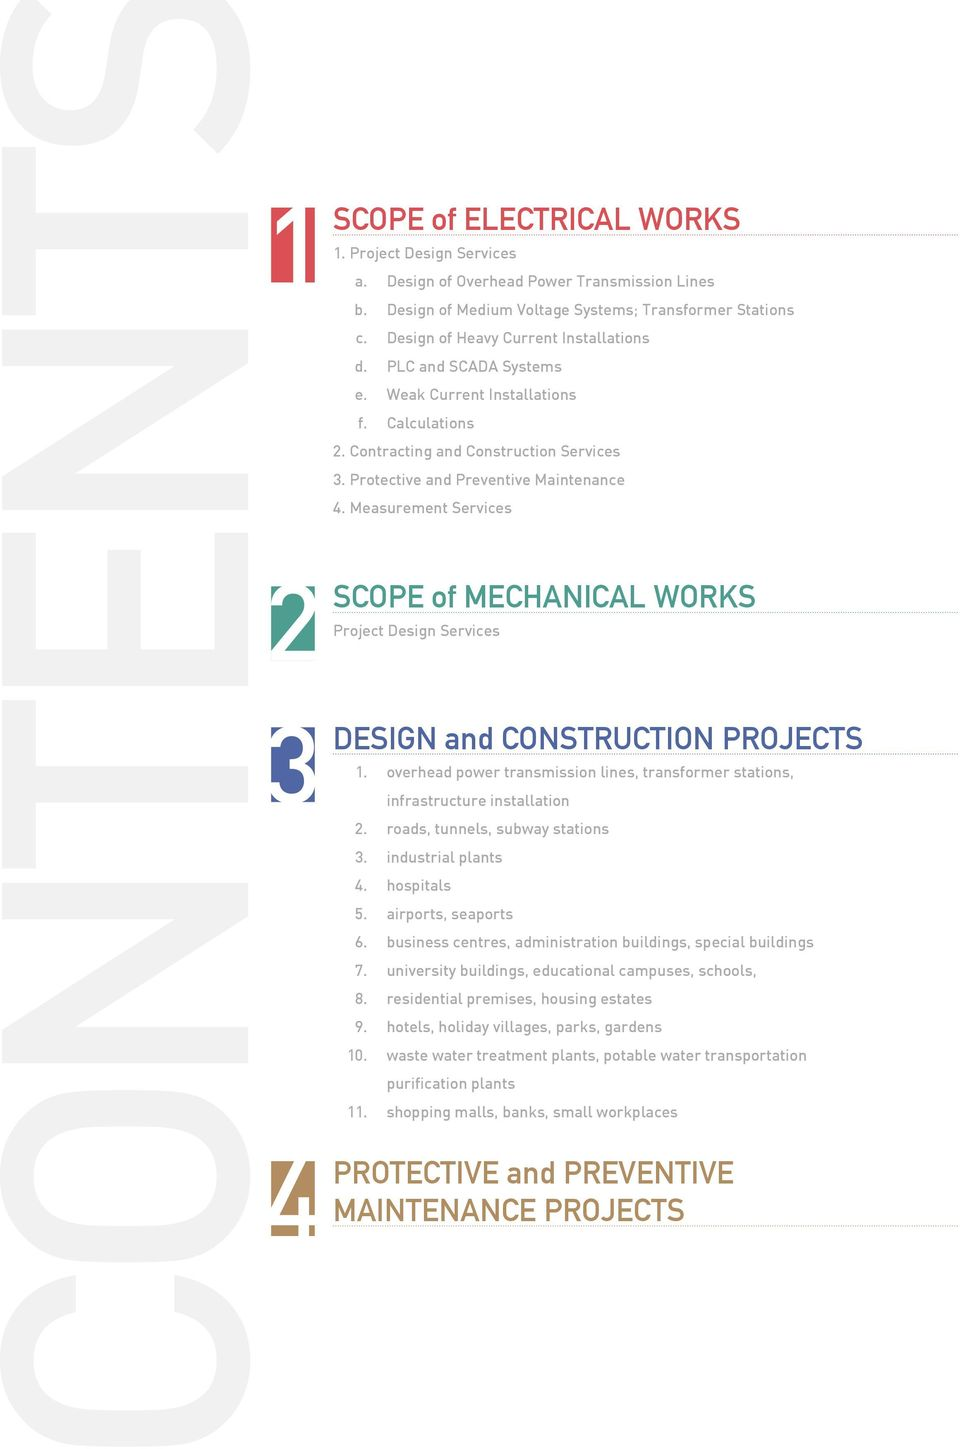 Measurement Services SCOPE of MECHANICAL WORKS Project Design Services DESIGN and CONSTRUCTION PROJECTS 1. overhead power transmission lines, transformer stations, infrastructure installation 2.